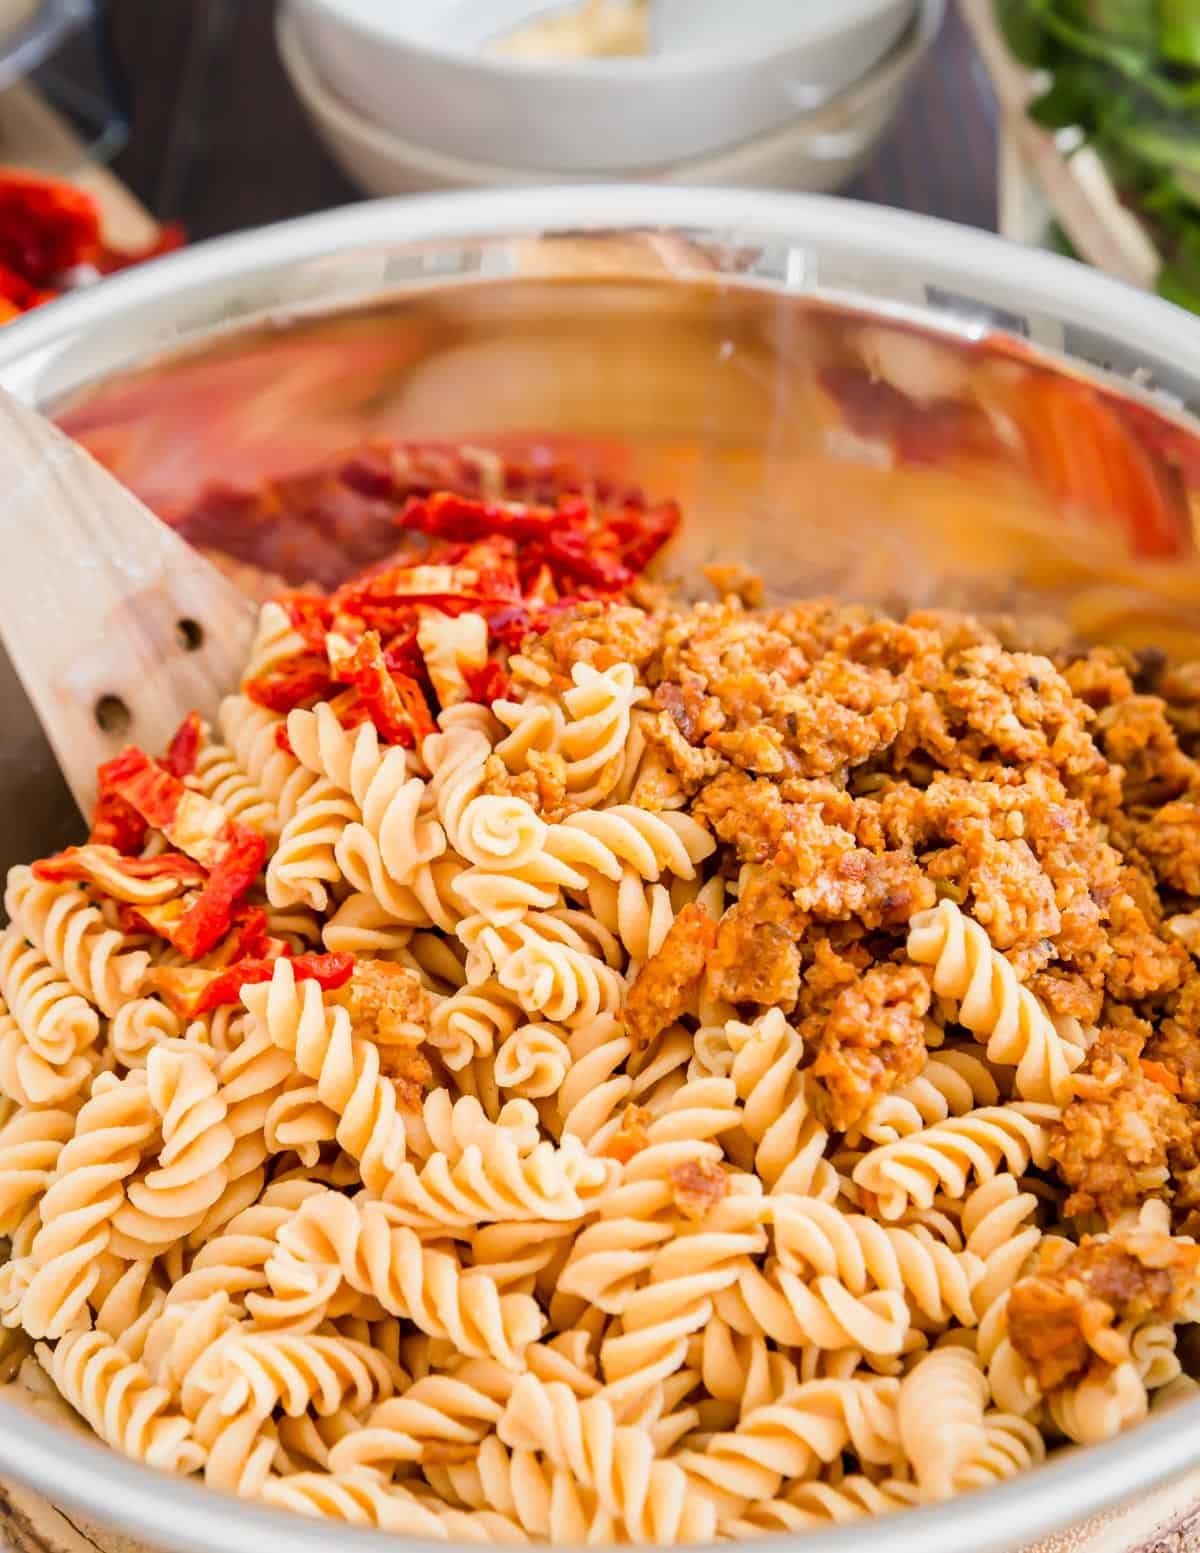 Sun-dried tomatoes and sautéed mushroom veggie burgers give this creamy white bean pasta tons of flavor and texture.